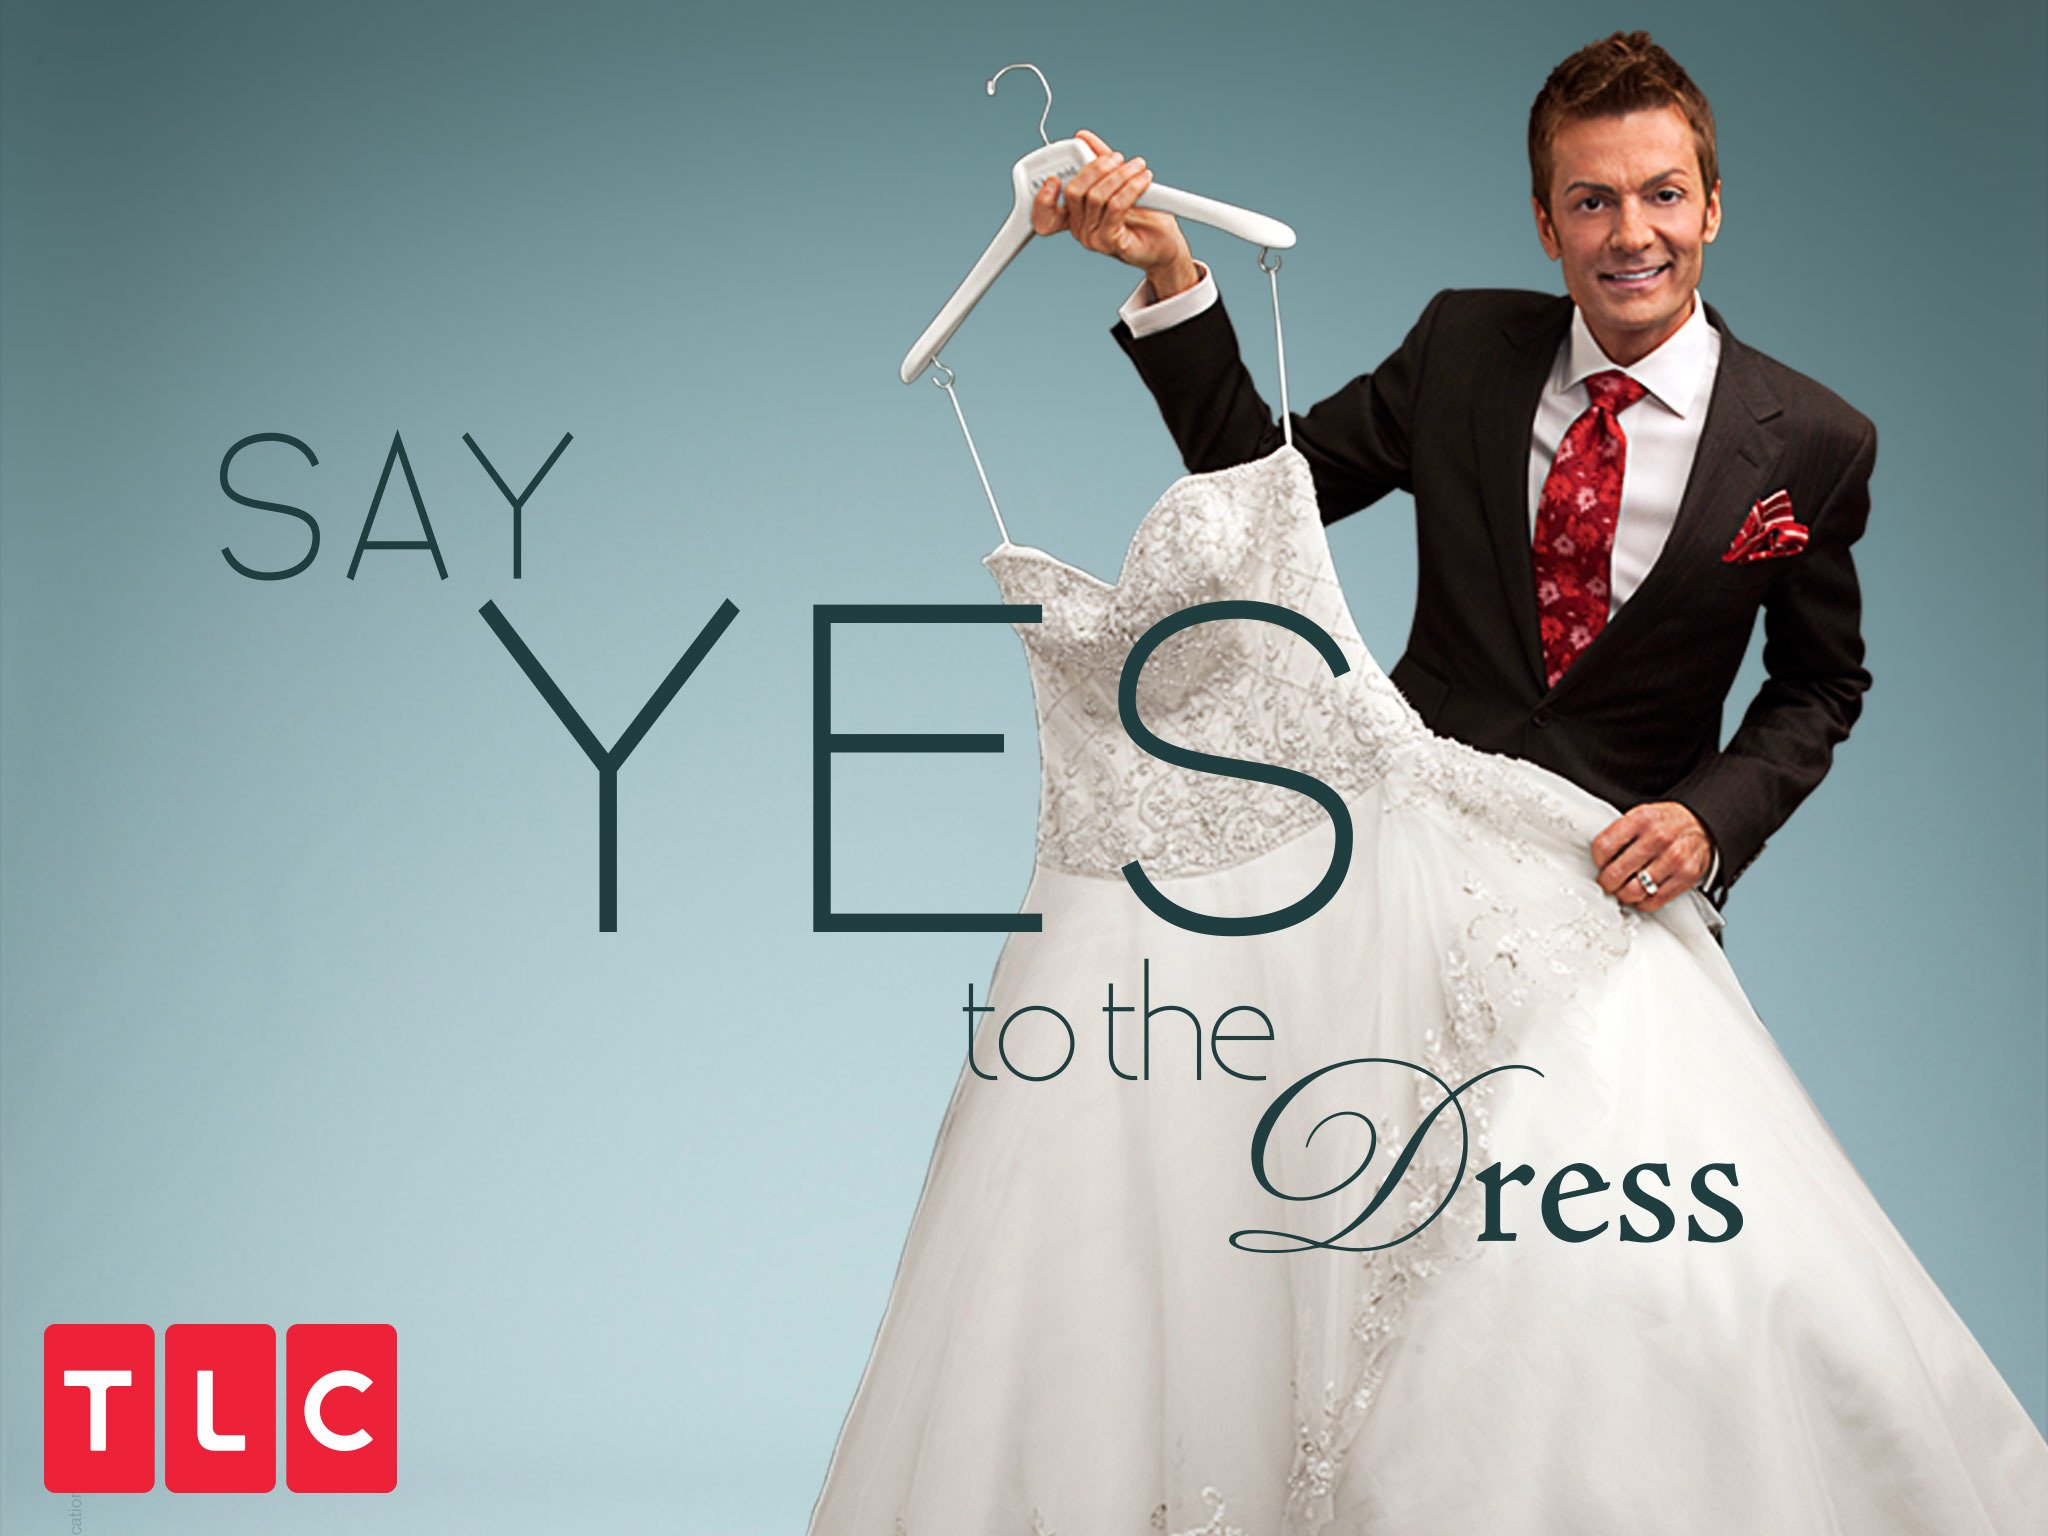 Amazon.com: Say Yes to the Dress Season 5: Amazon Digital Services LLC